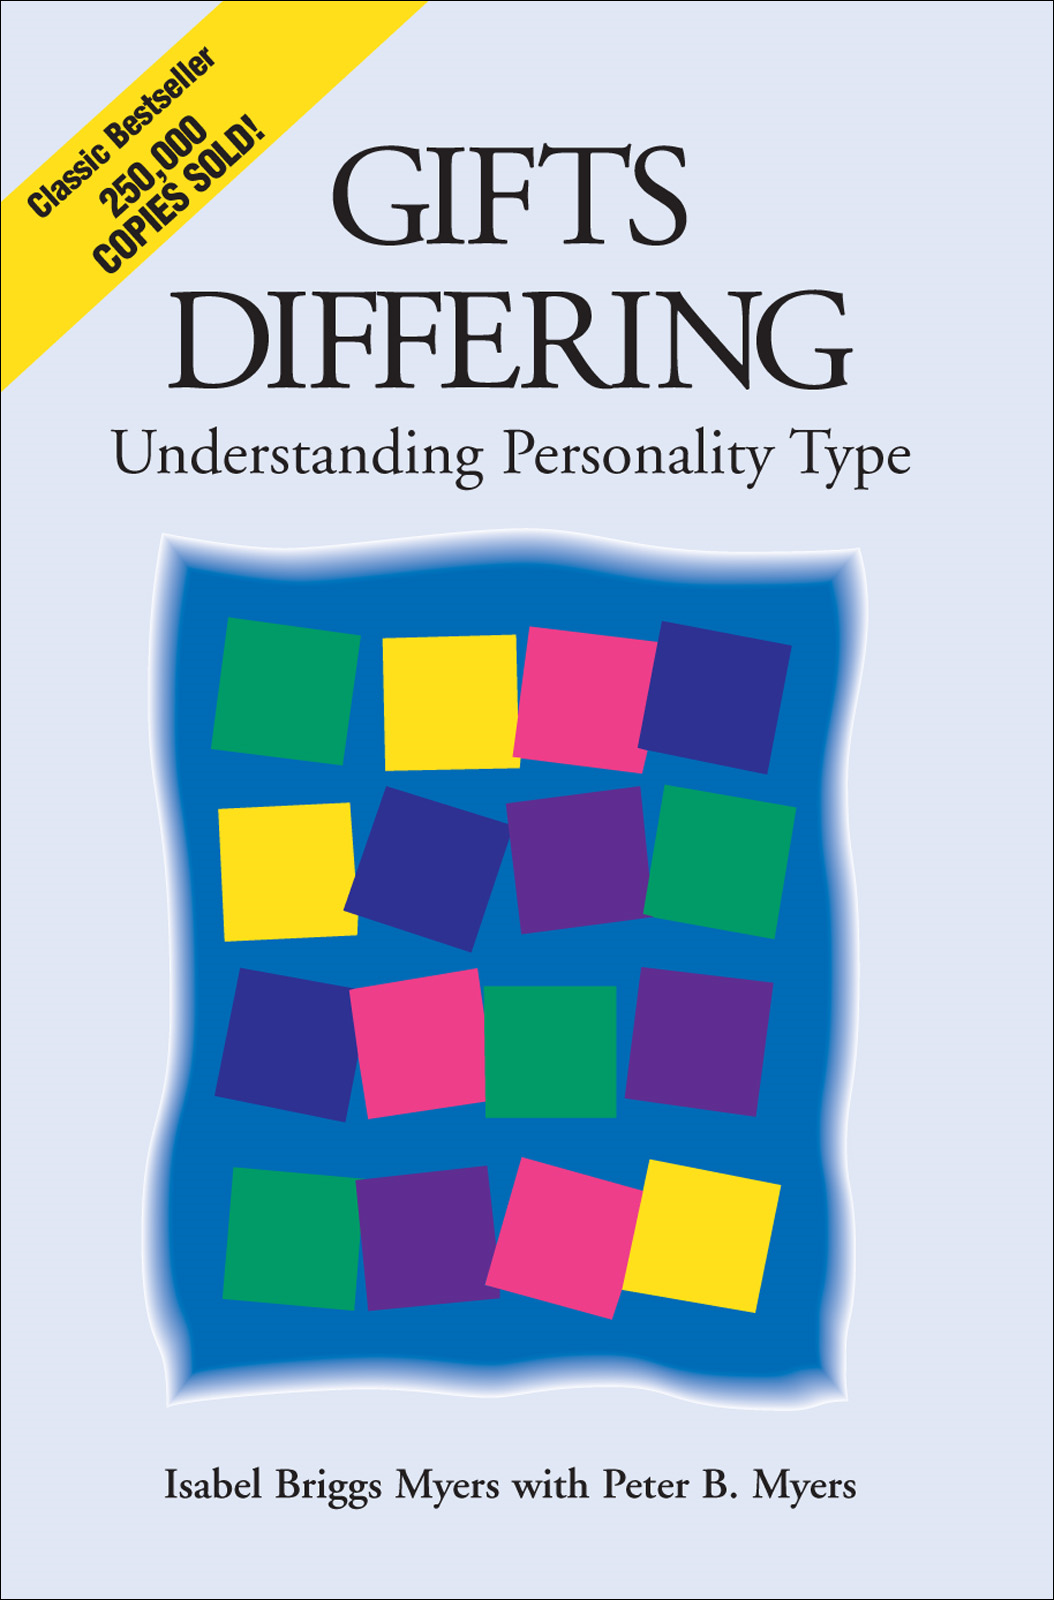 Gifts Differing: Understanding Personality Type By: Isabel Briggs Myers with Peter B. Myers